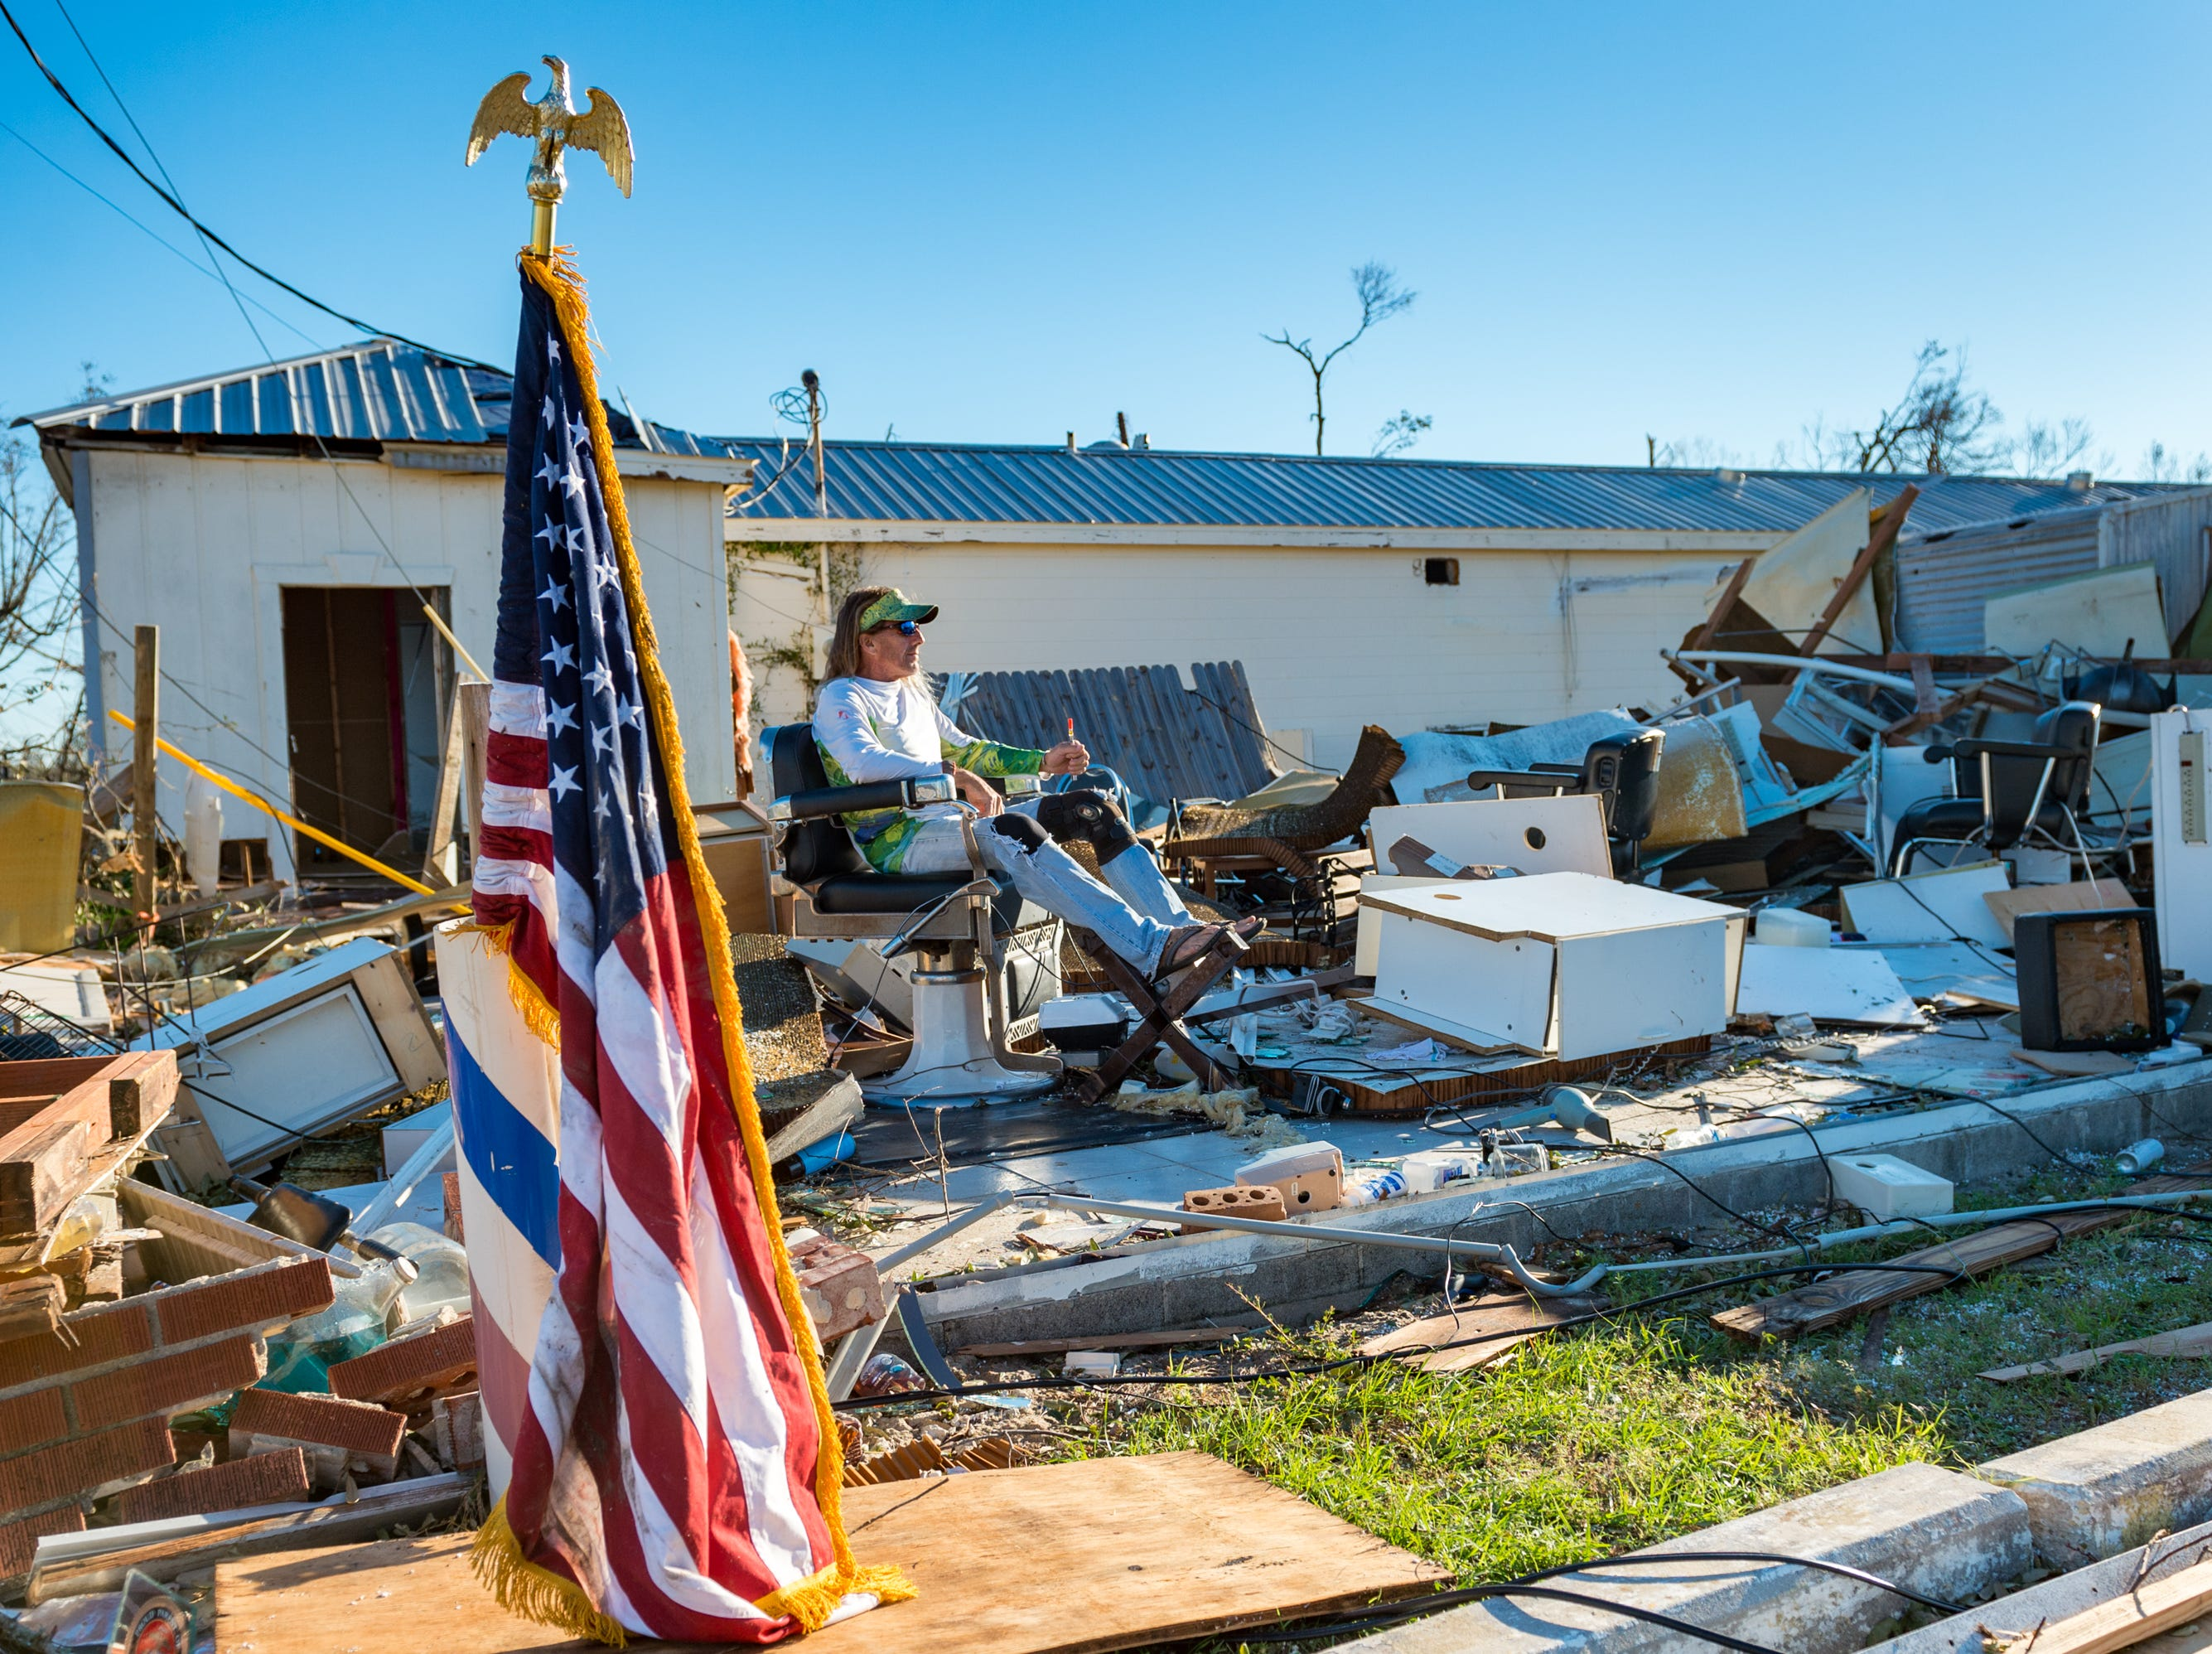 William Gay takes a break while helping a friend to find personal belongings in a barber shop on Highway 98 on Oct. 12, 2018 in Panama City, Fla. after Hurricane Michael caused widespread damage.